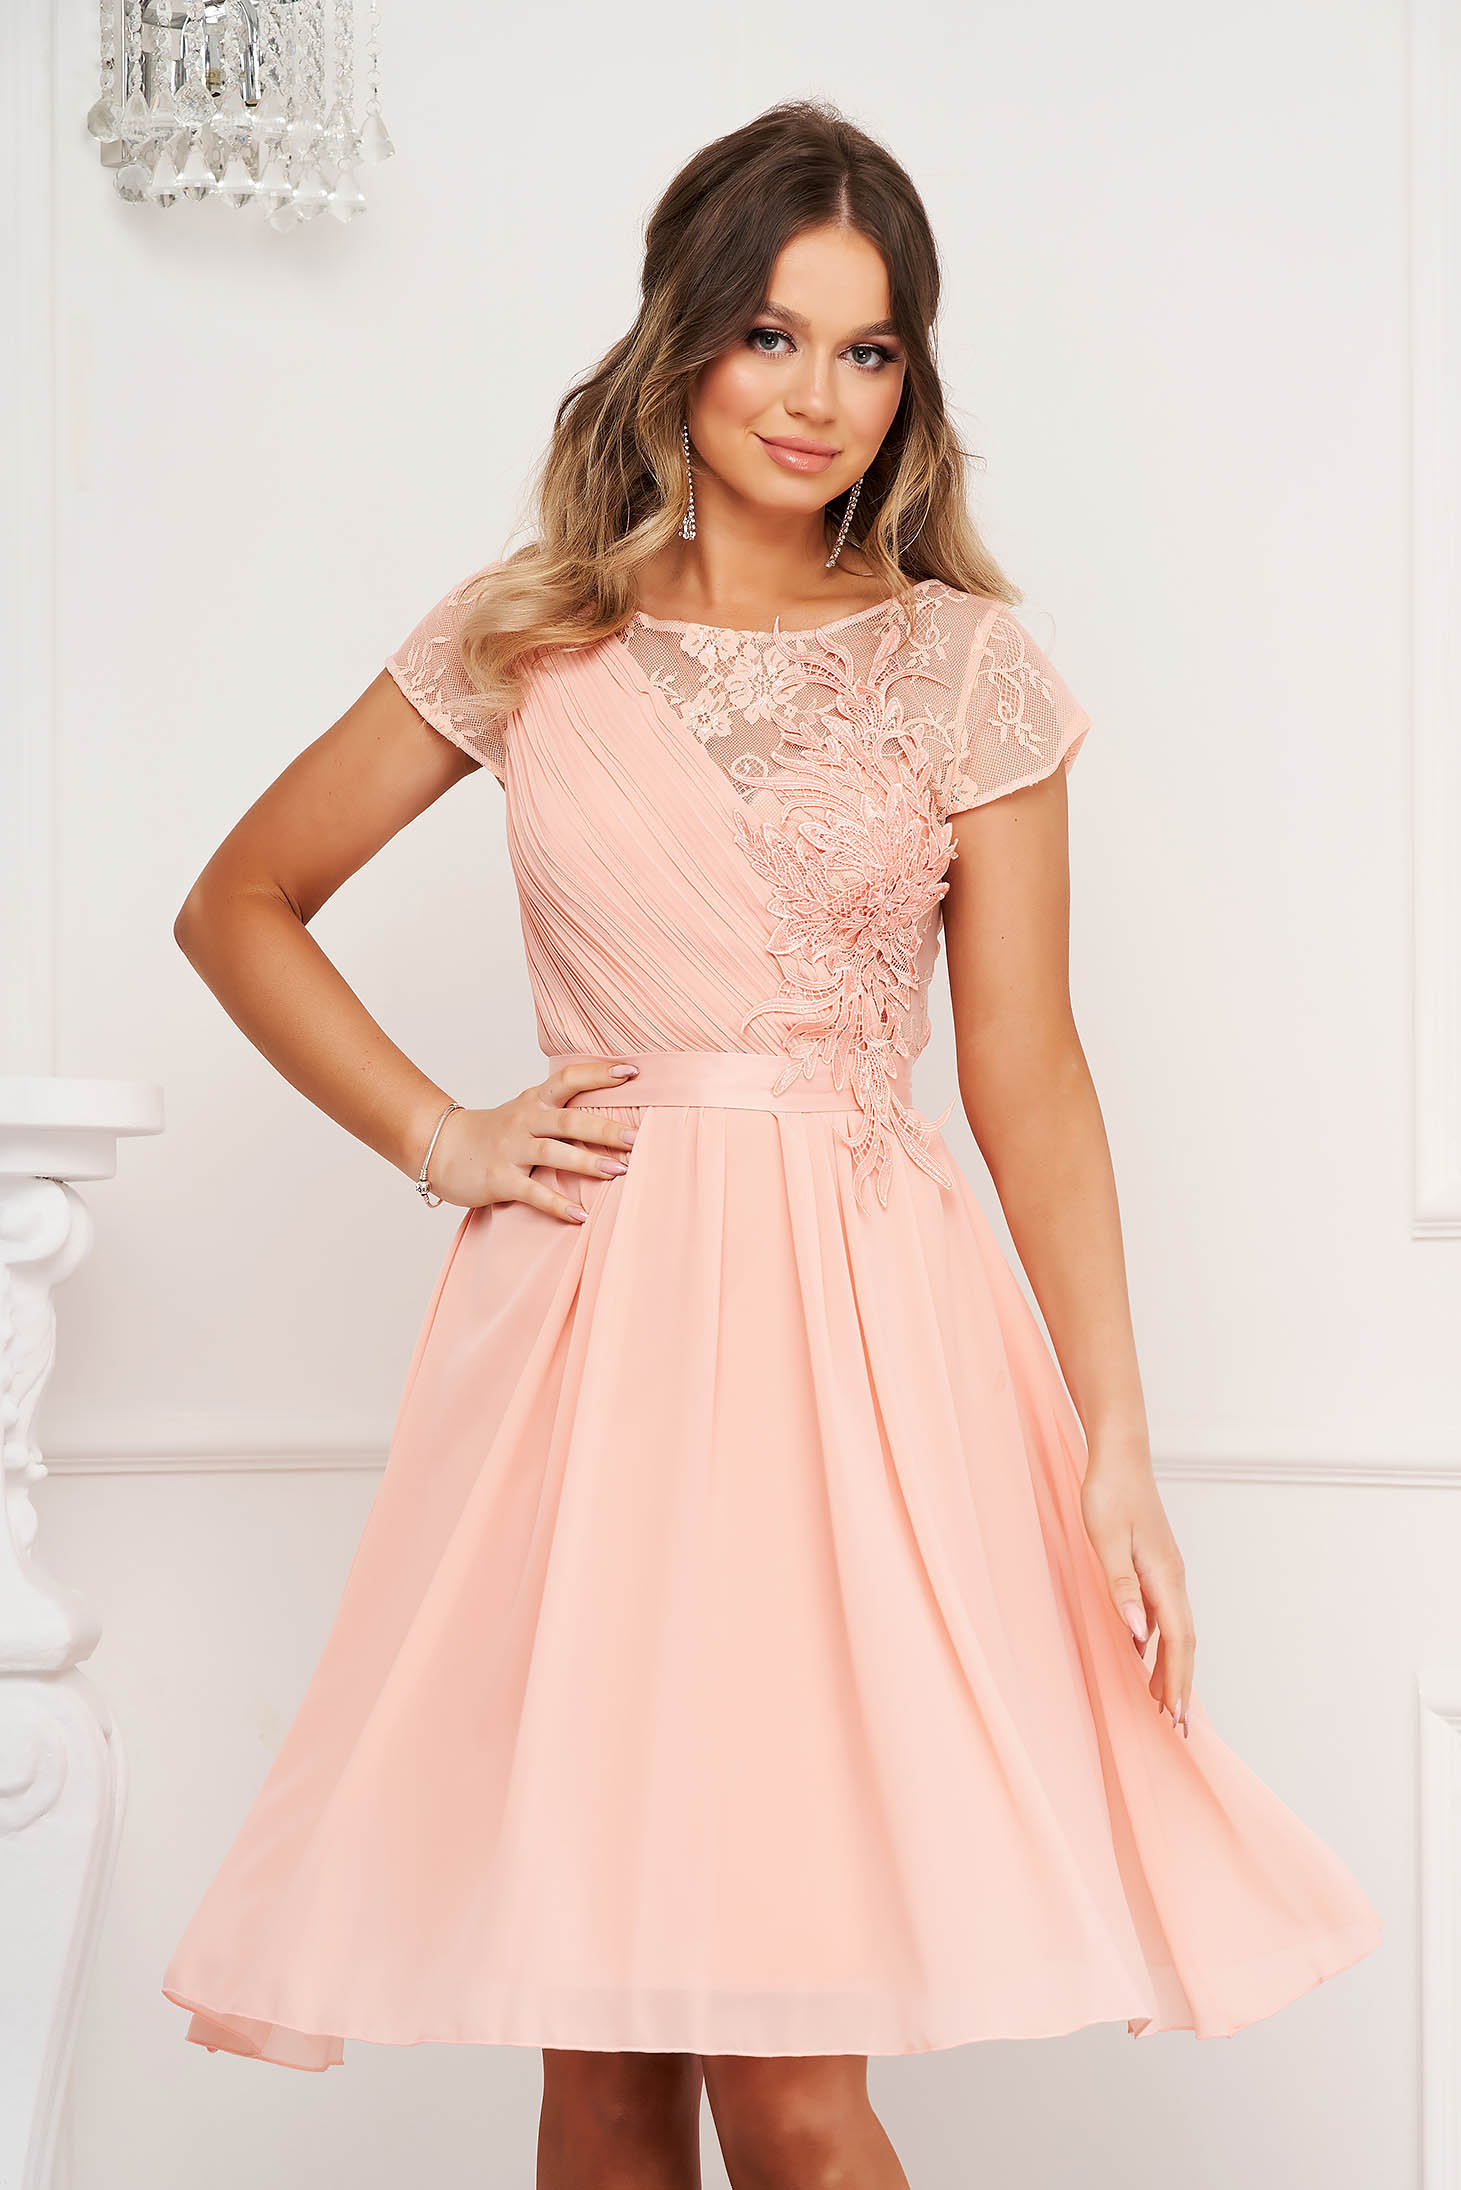 Peach dress from veil fabric with lace details occasional cloche